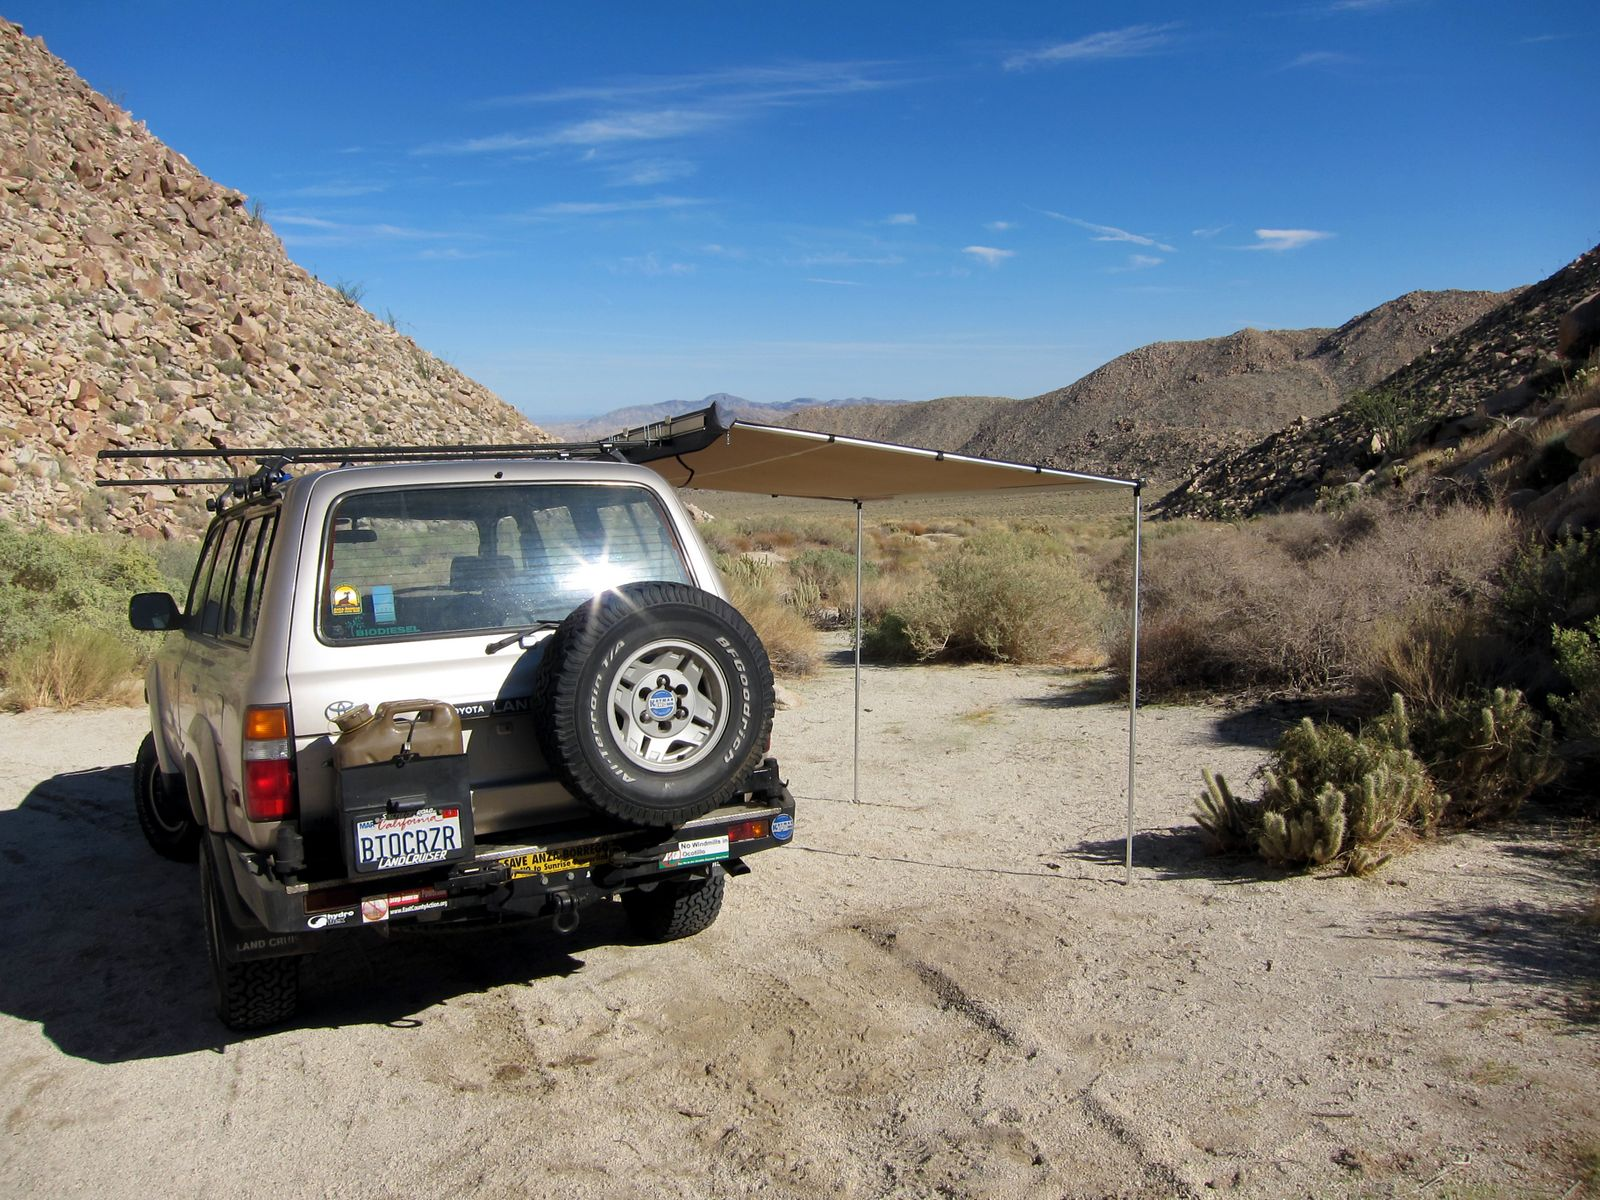 ARB awning will be a great addition to many of our Anza Borrego adventures.